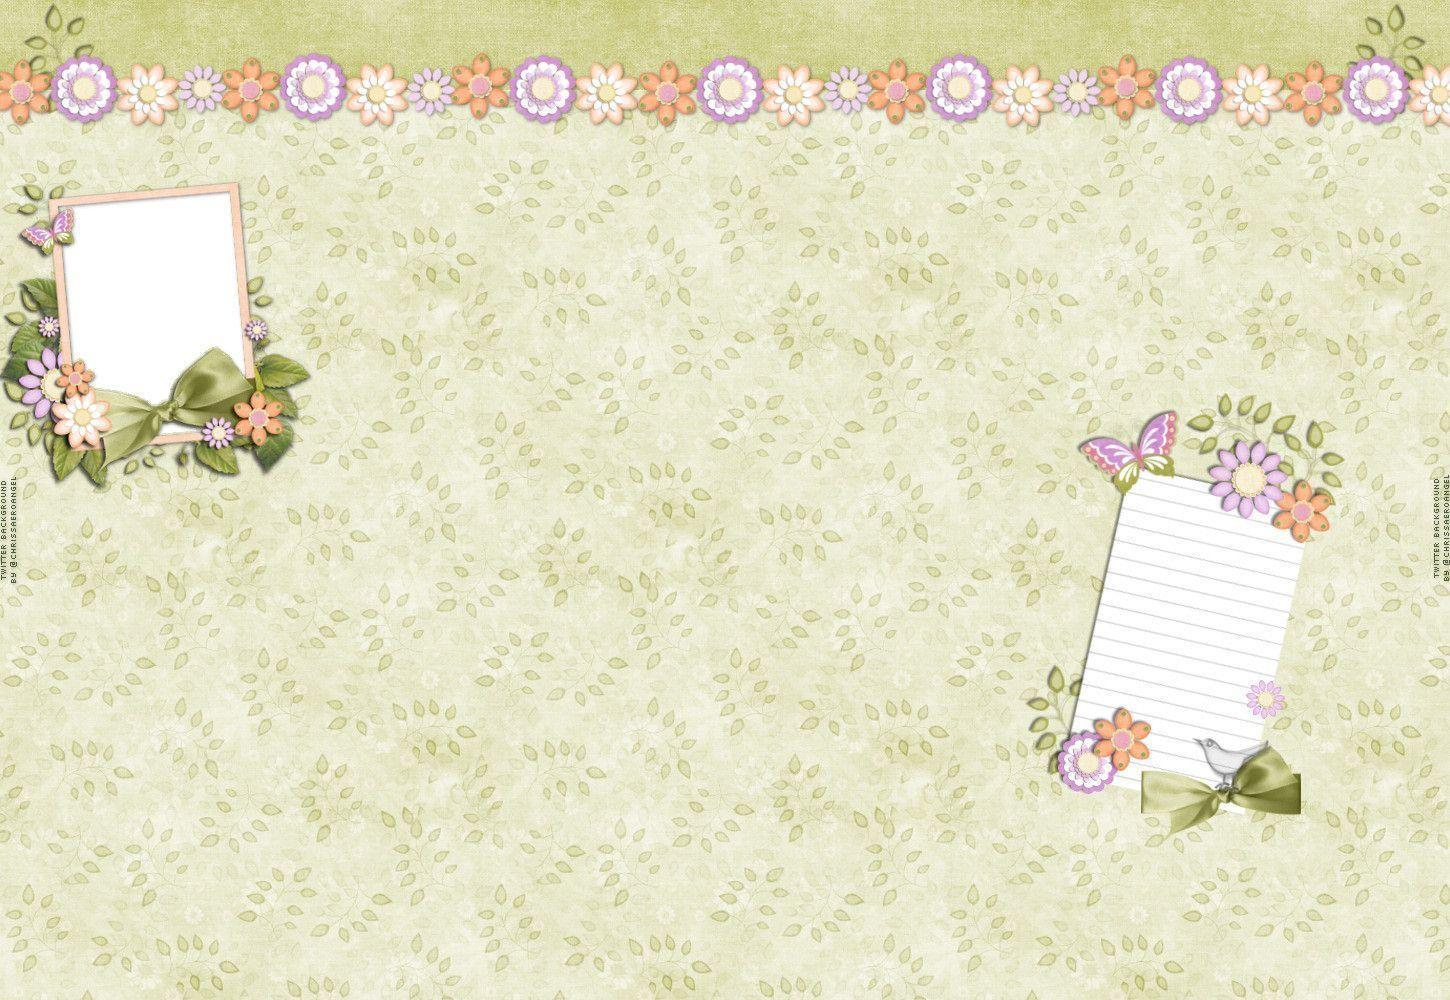 Soft Flowers And Butterflies Twitter Backgrounds, Soft Flowers And ...